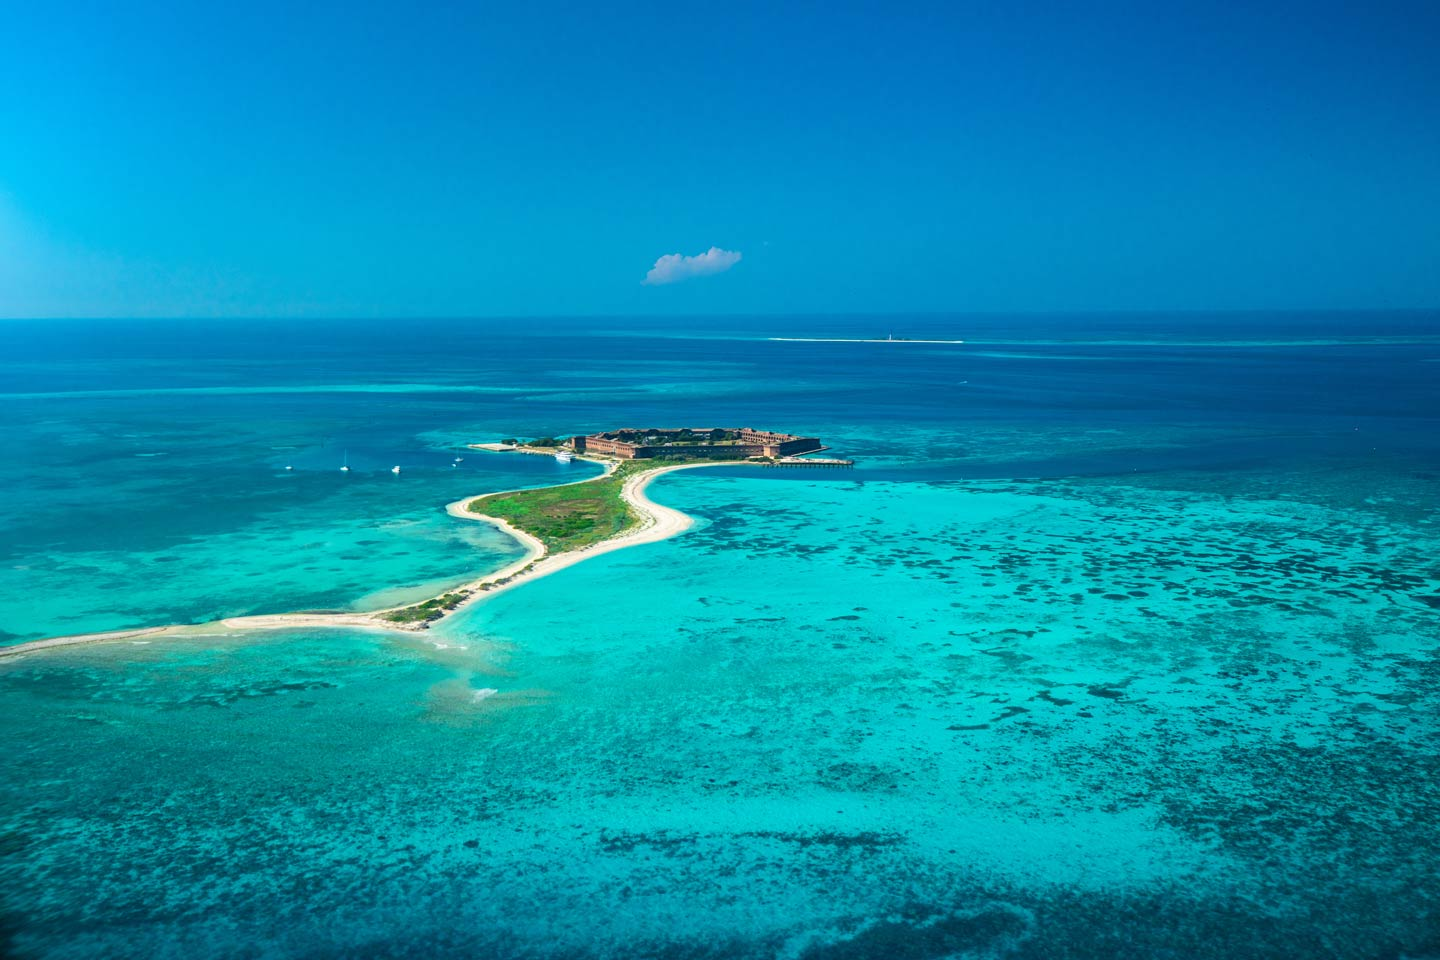 An aerial view of the Dry Tortugas National Park